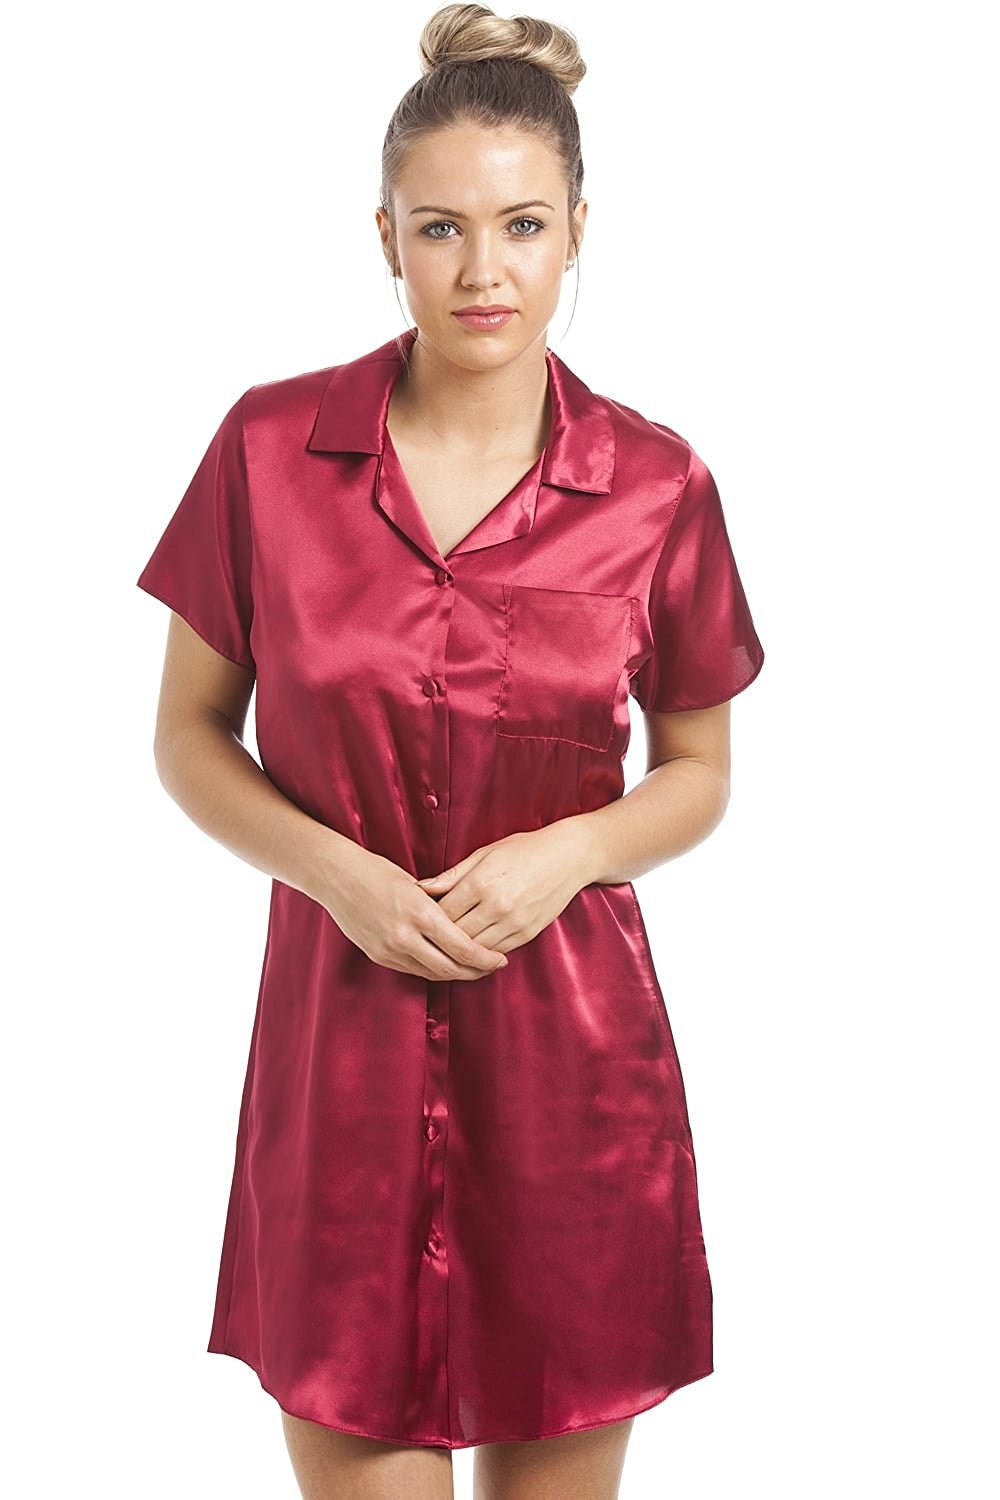 e9f5eb3670 Camille Womens Ladies Luxurious Knee Length Red Satin Nightshirt